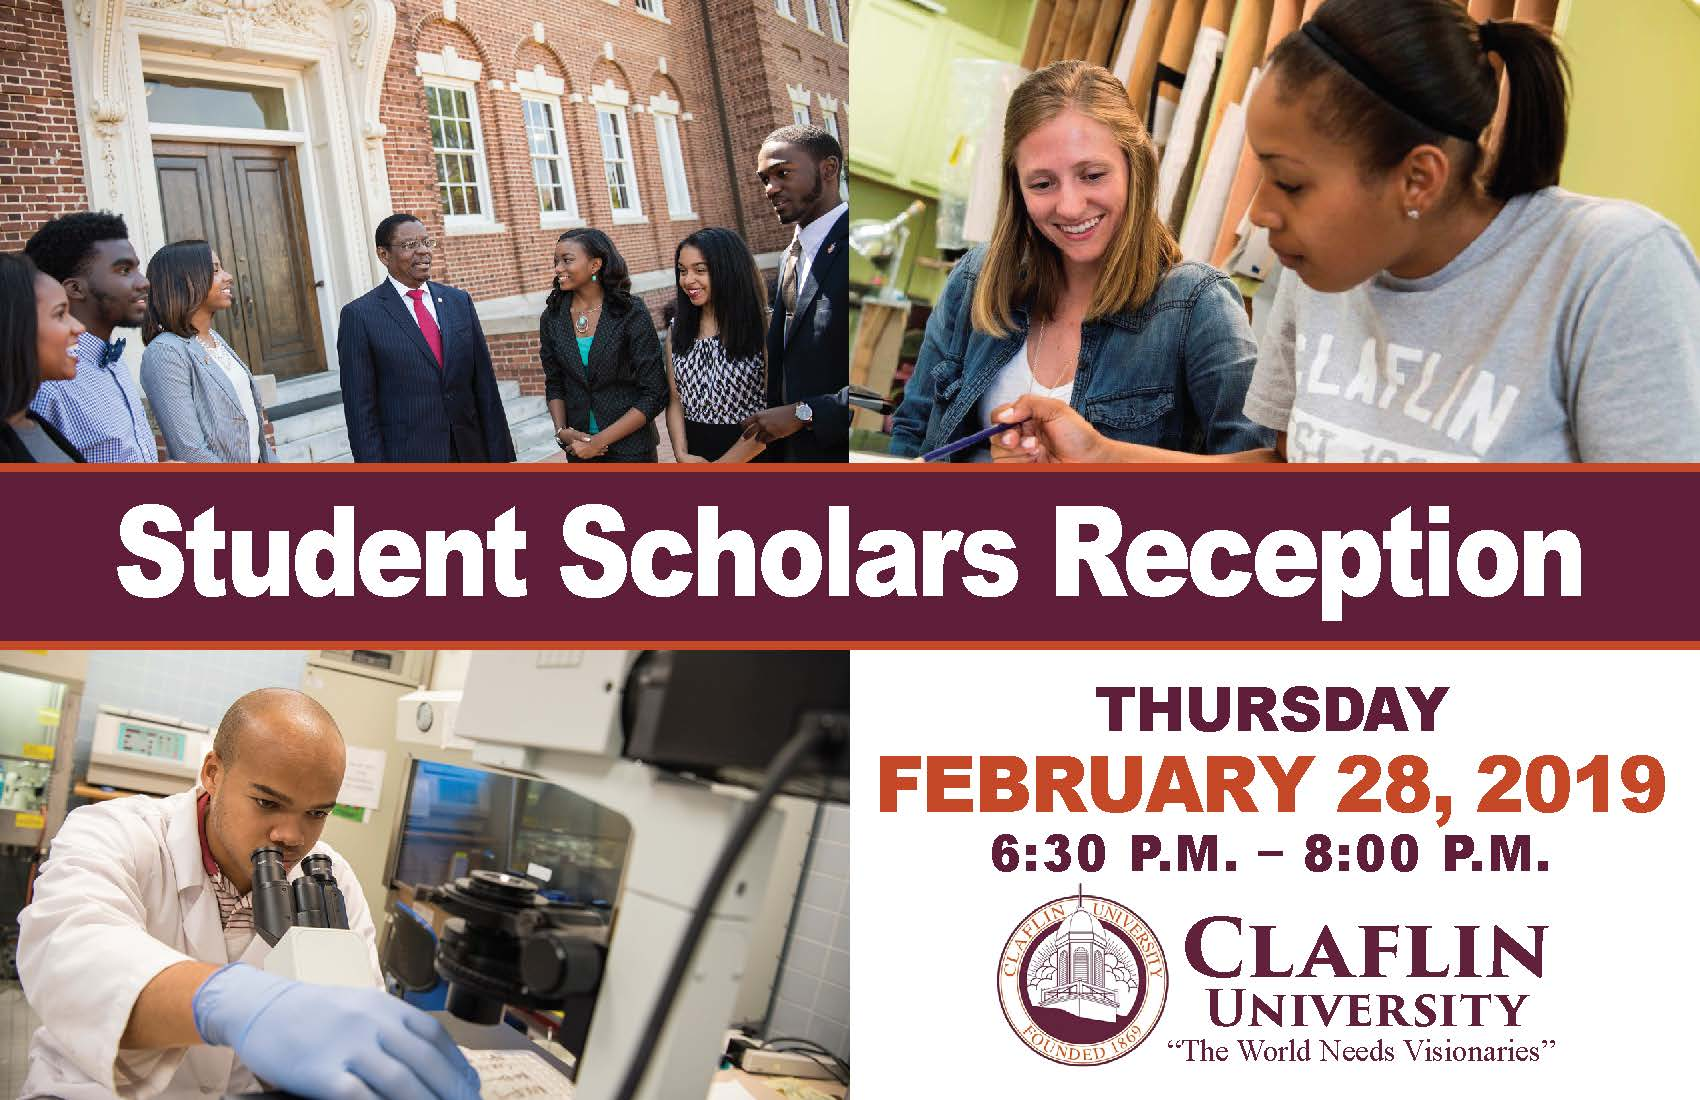 Student Scholars Reception Postcard - February 28, 2019 - Doubletree by Hilton Charlotte_Page_1